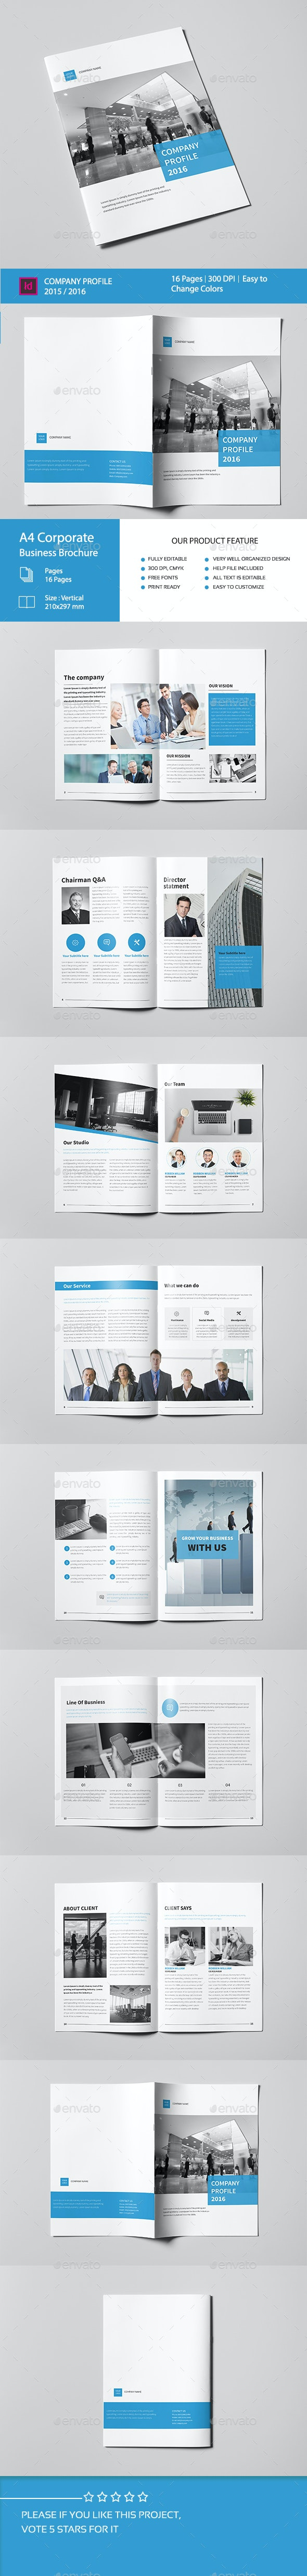 Corporate Business Brochure 16 Pages A4 - Corporate Brochures